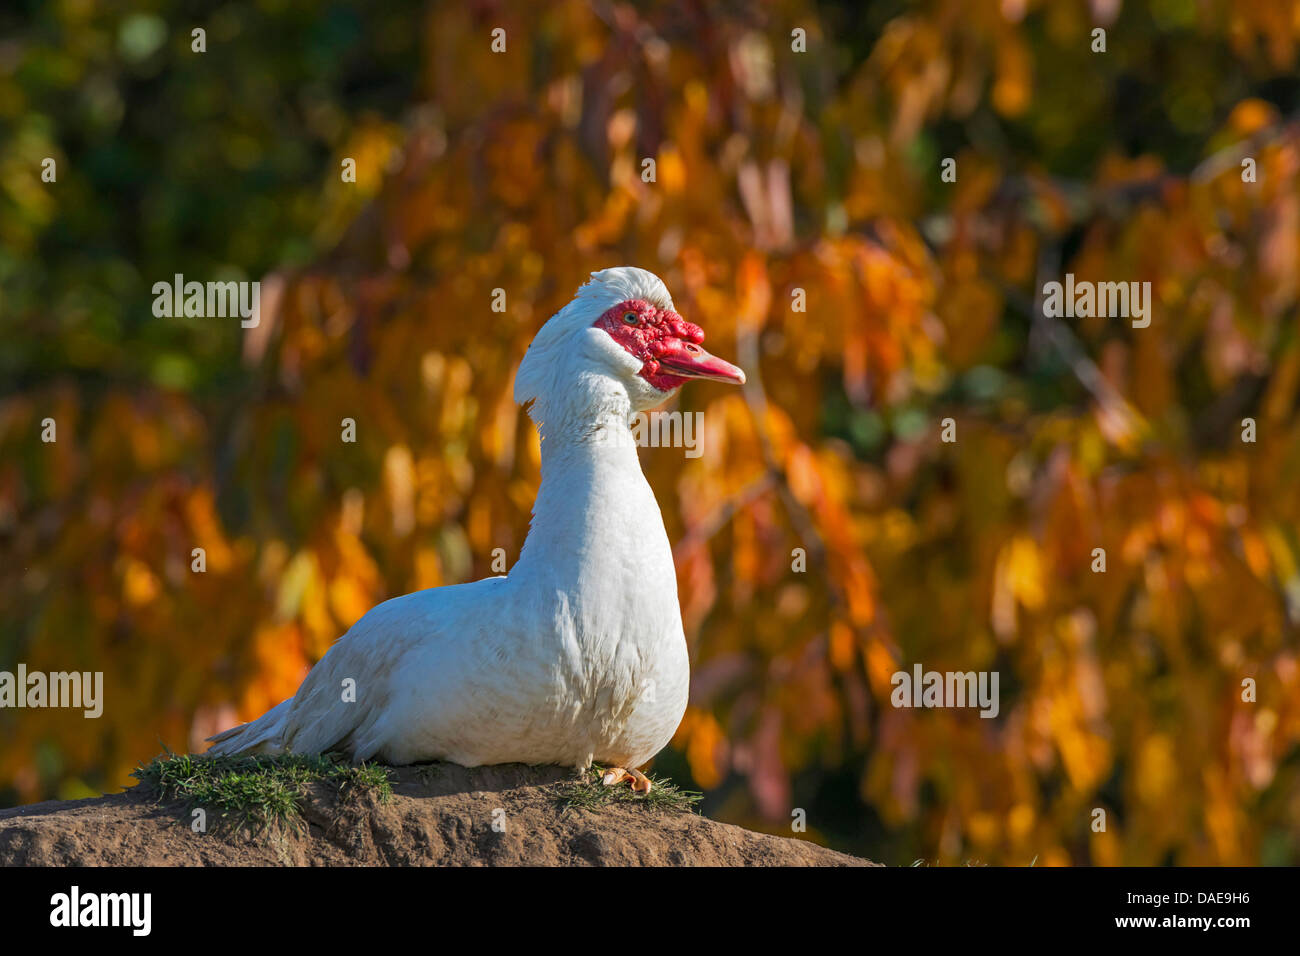 Duck Form Stock Photos & Duck Form Stock Images - Alamy